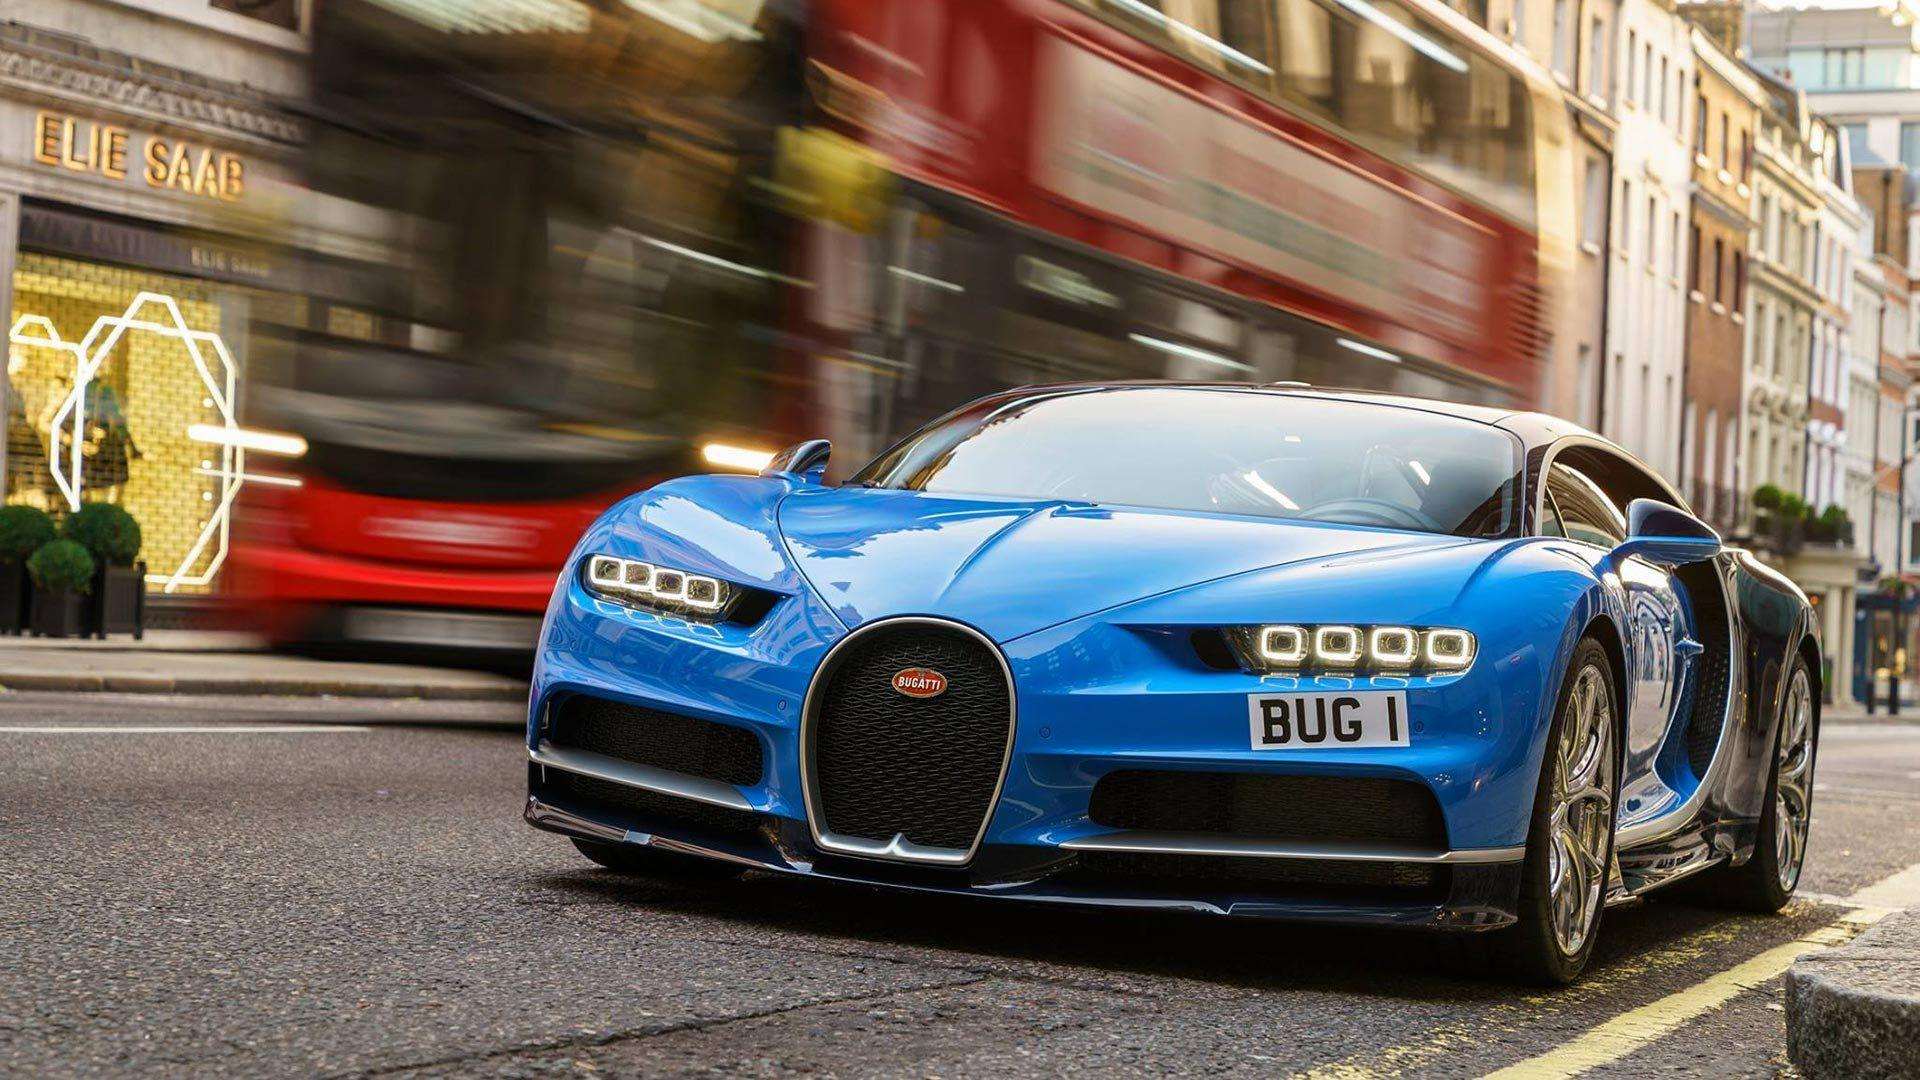 Even Bugatti's Latest Two-Car Chiron Recall is Luxurious - The Drive